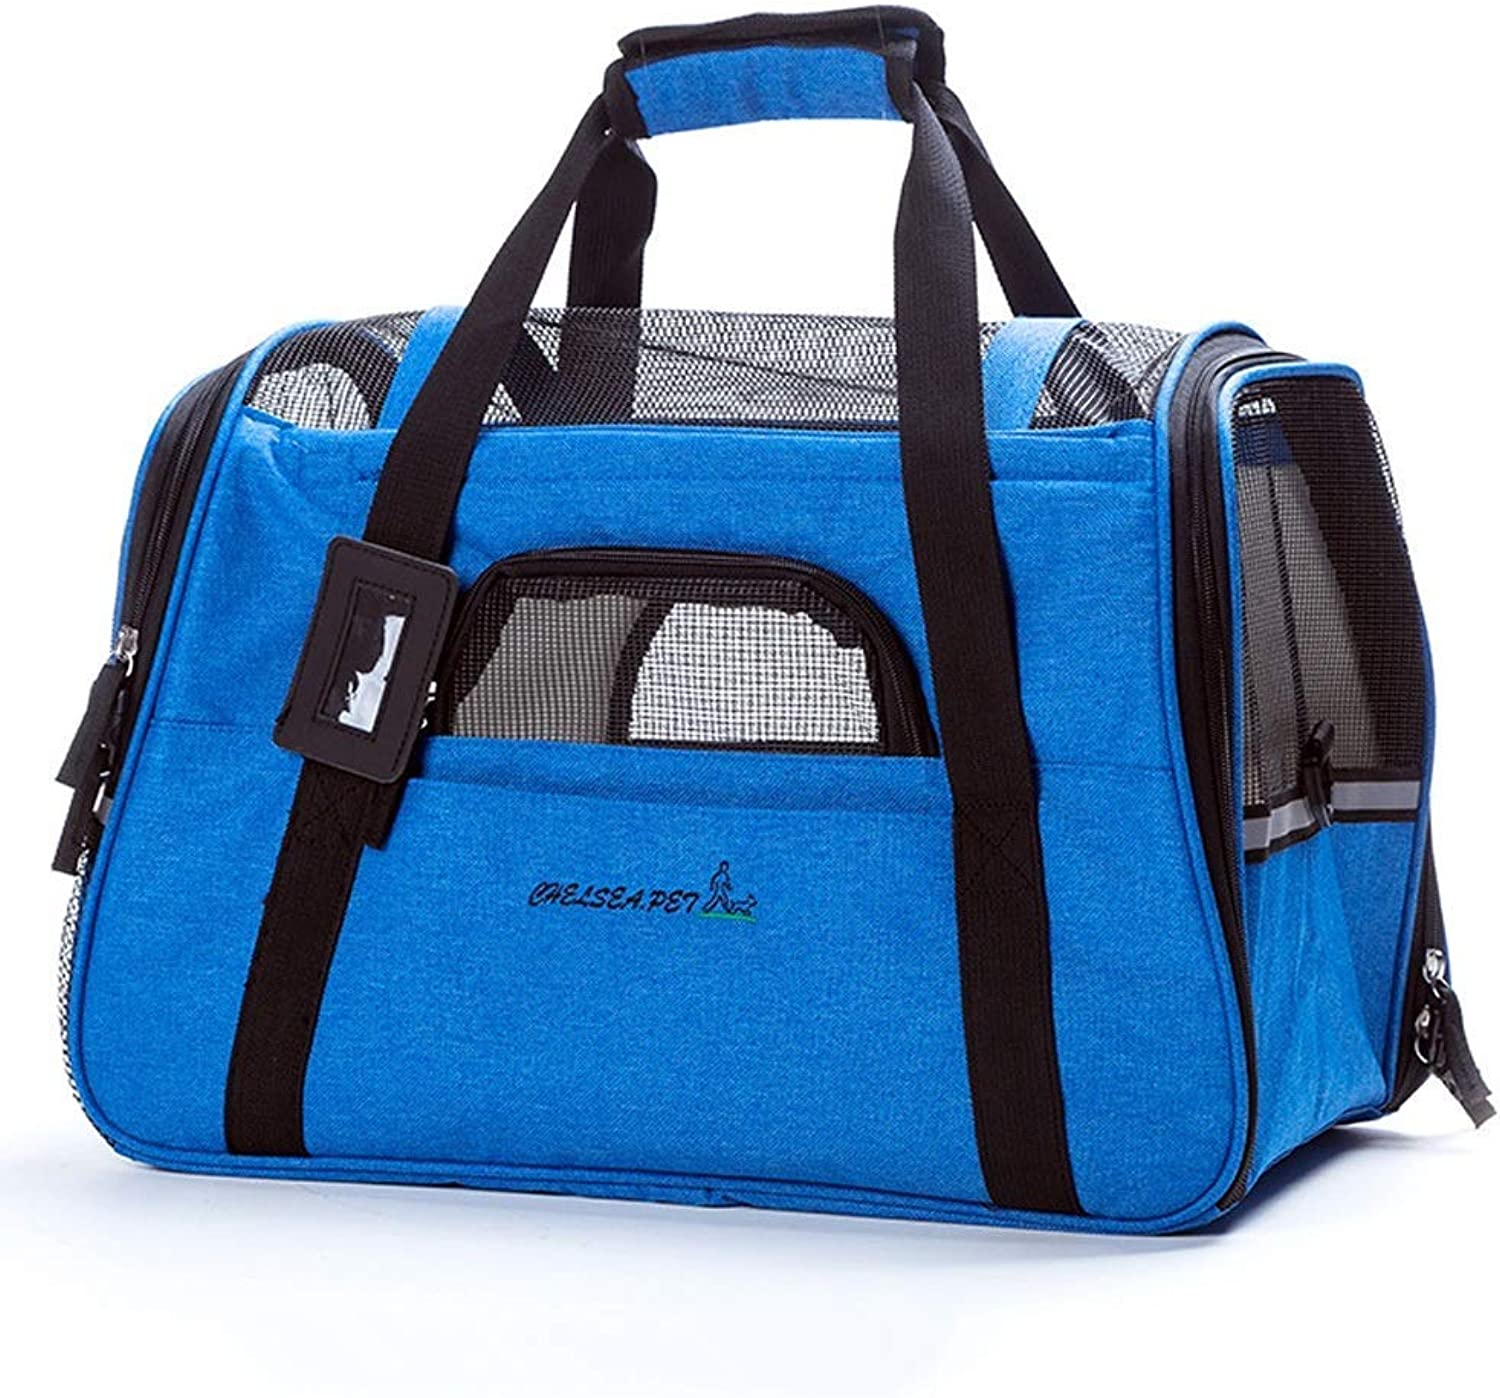 Pet Travel Carrier Pet Carrier for Small Dogs, Cats, Puppies, Kittens, Pets Carry Your Pet with Safely and Comfortably Ourtdoor Pet Bag (color   Dark bluee)